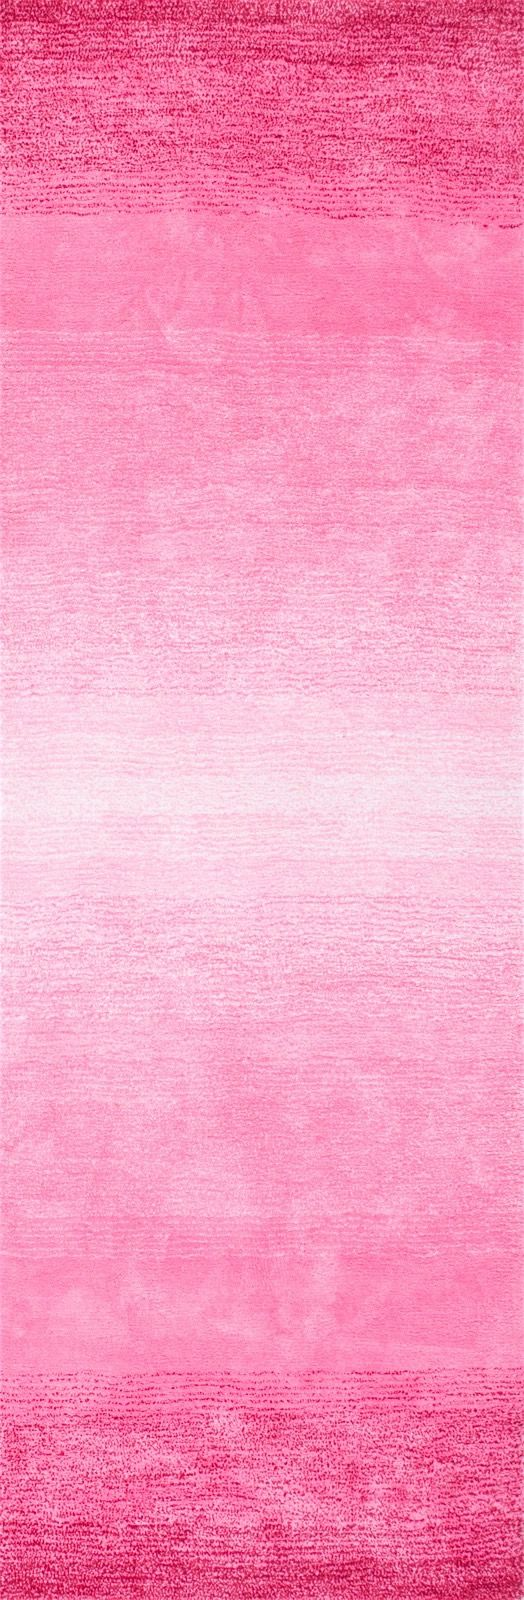 nuloom ombre bernetta plush area rug collection